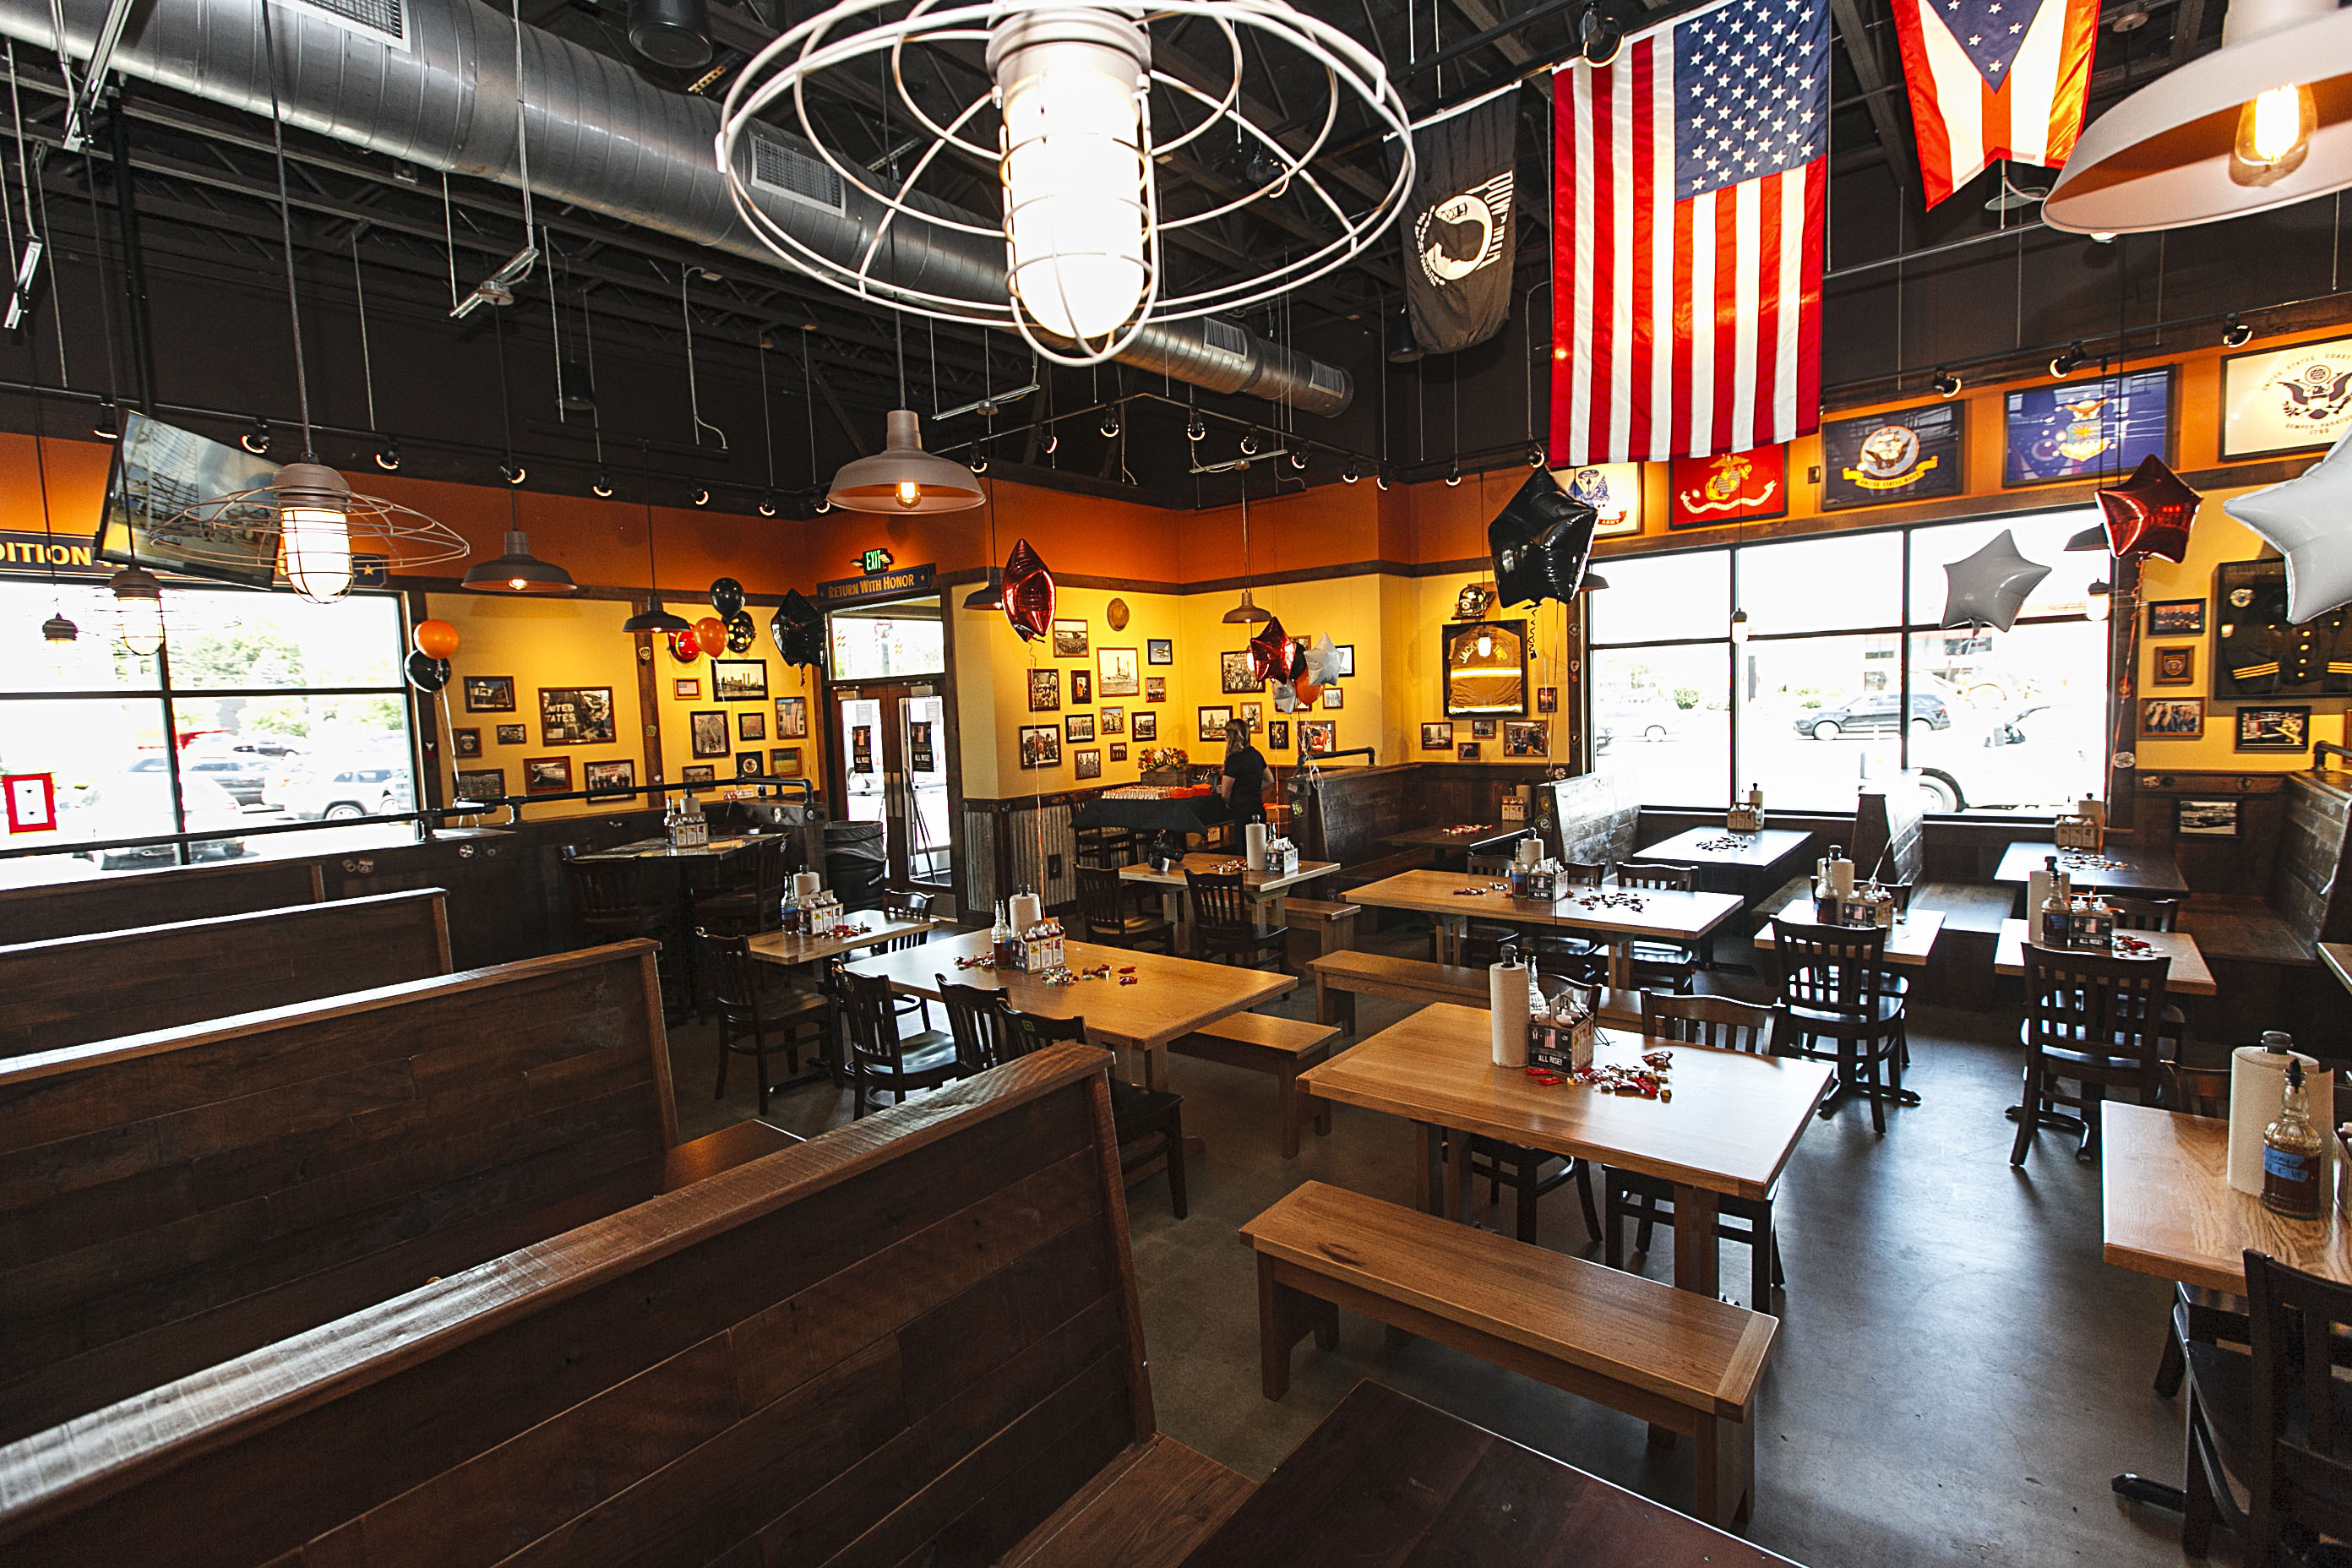 MISSION BBQ Opens Doors at The Shoppes at Parma